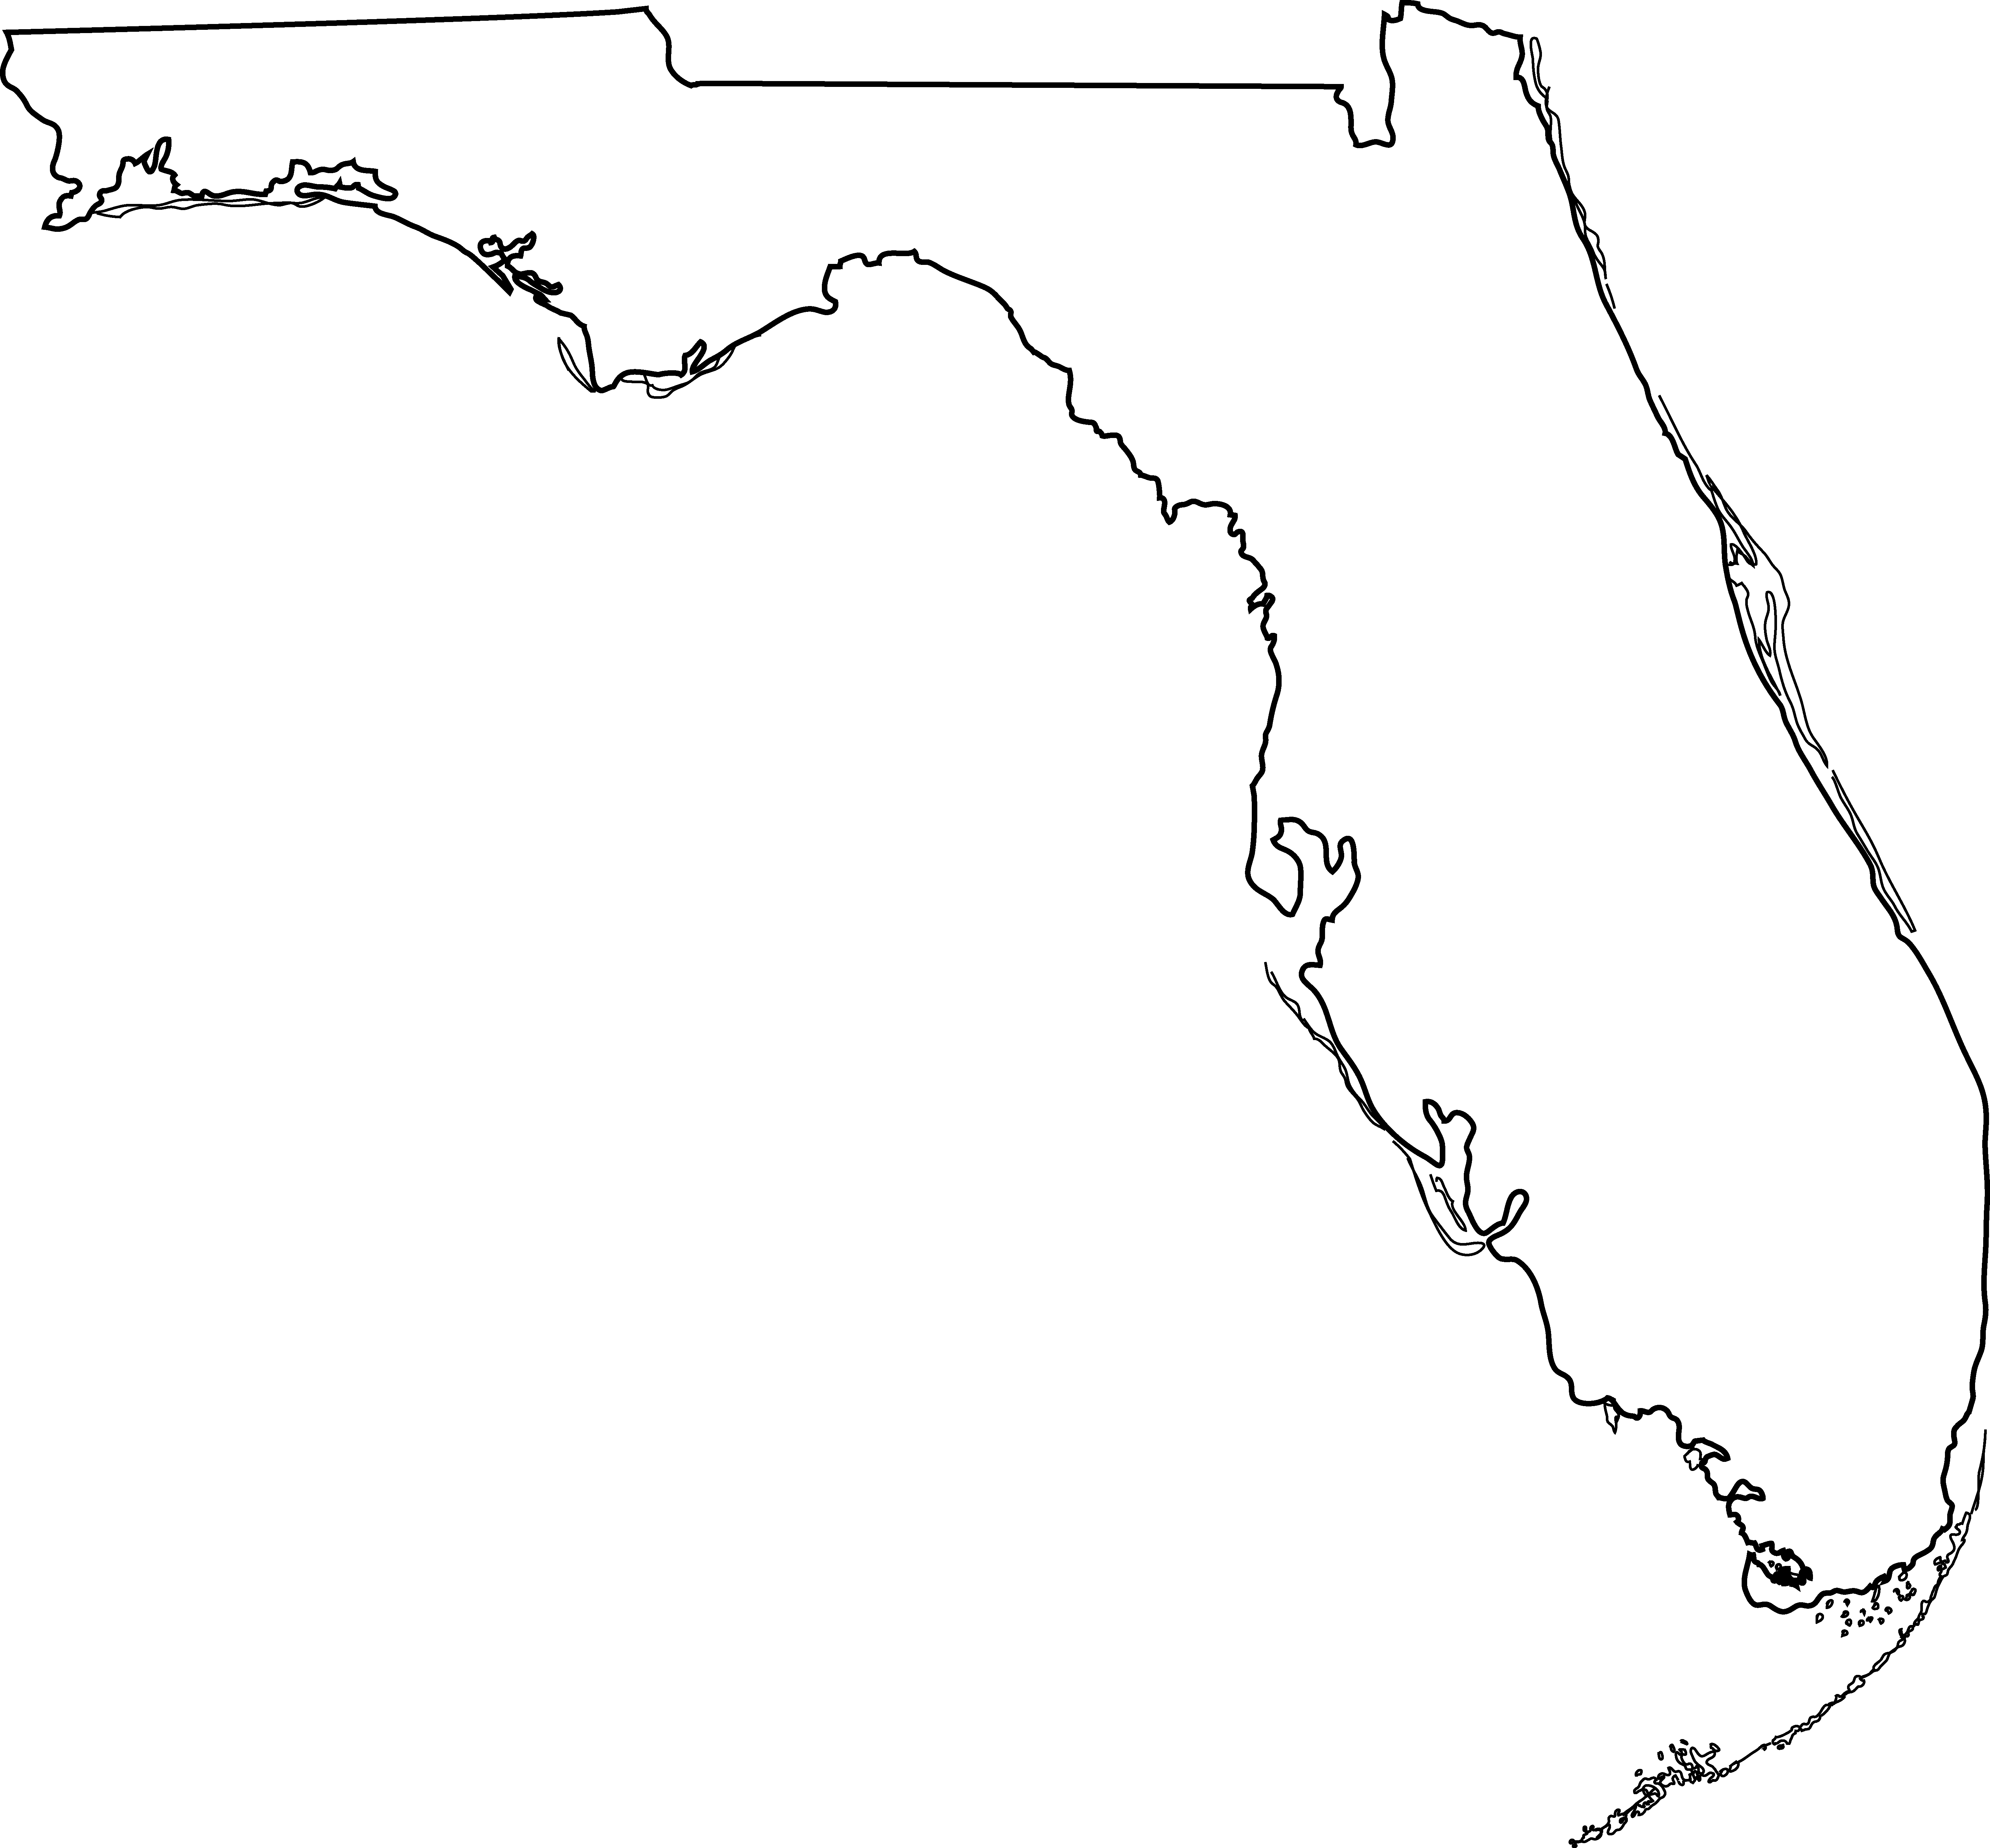 United states clipart map. Fl image group florida